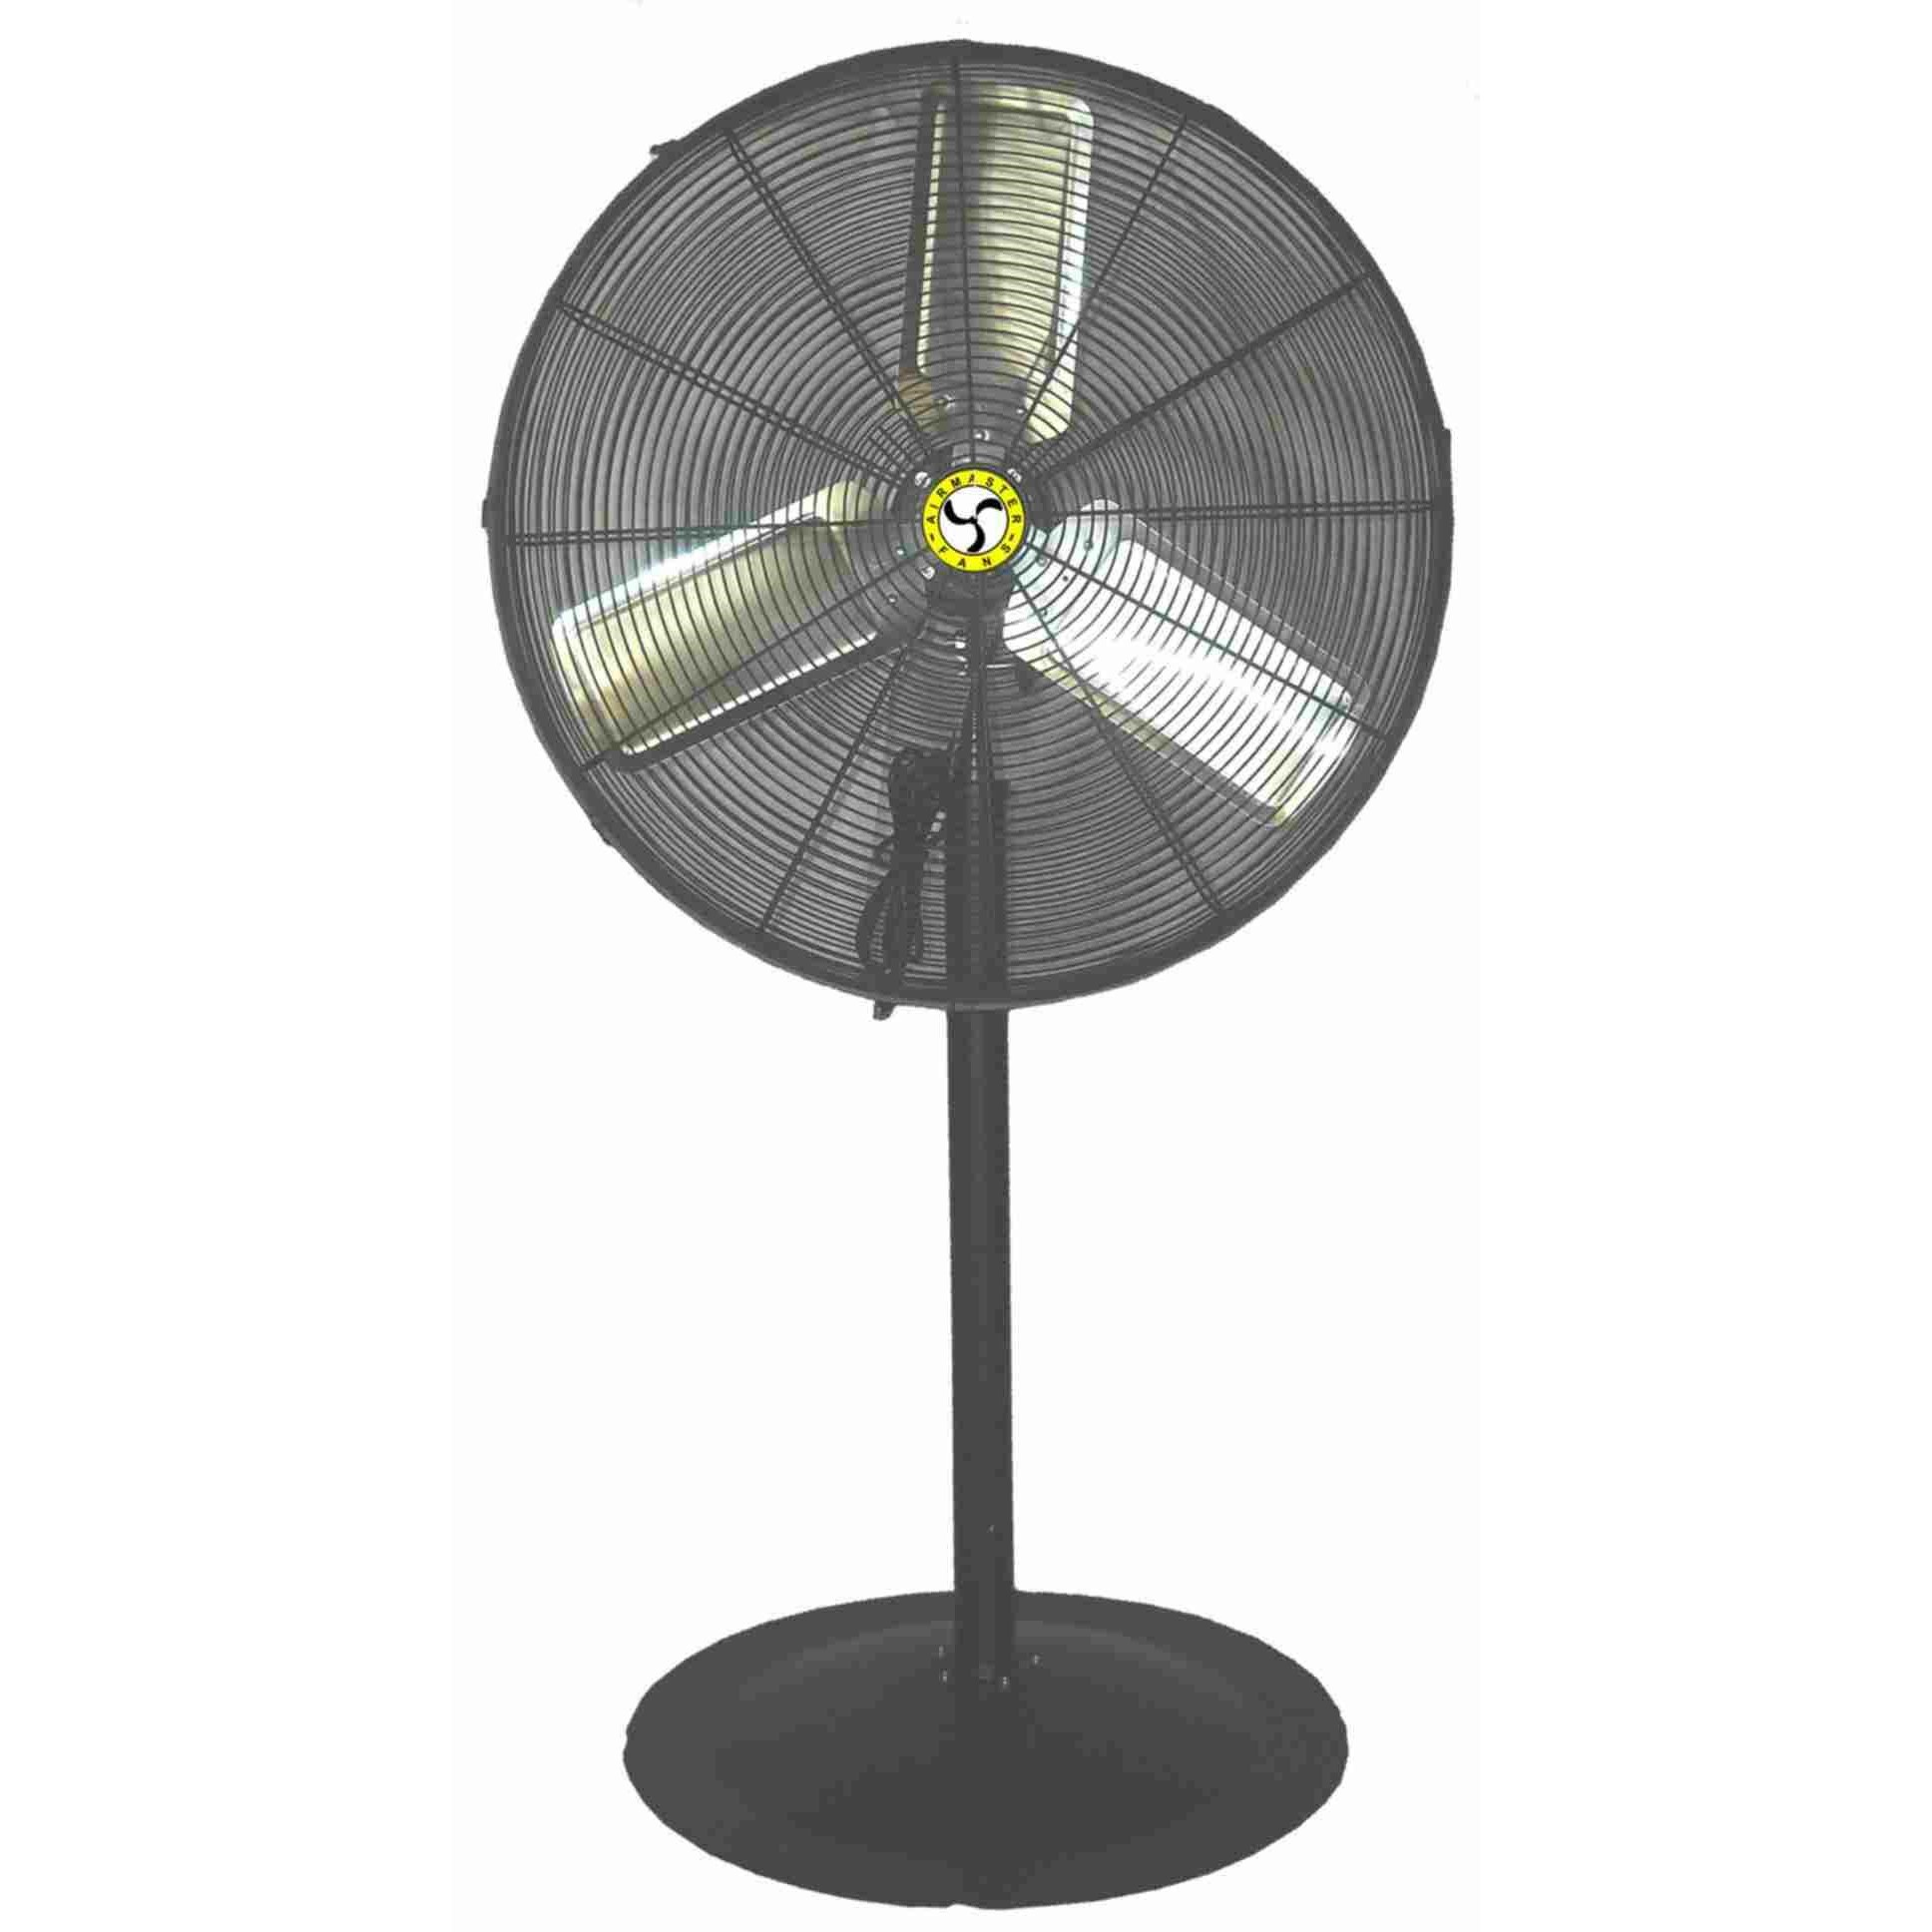 Supplies / Fans / Pedestal Fan / 71531 Airmaster Fans Pedestal Fan #AEAE1D